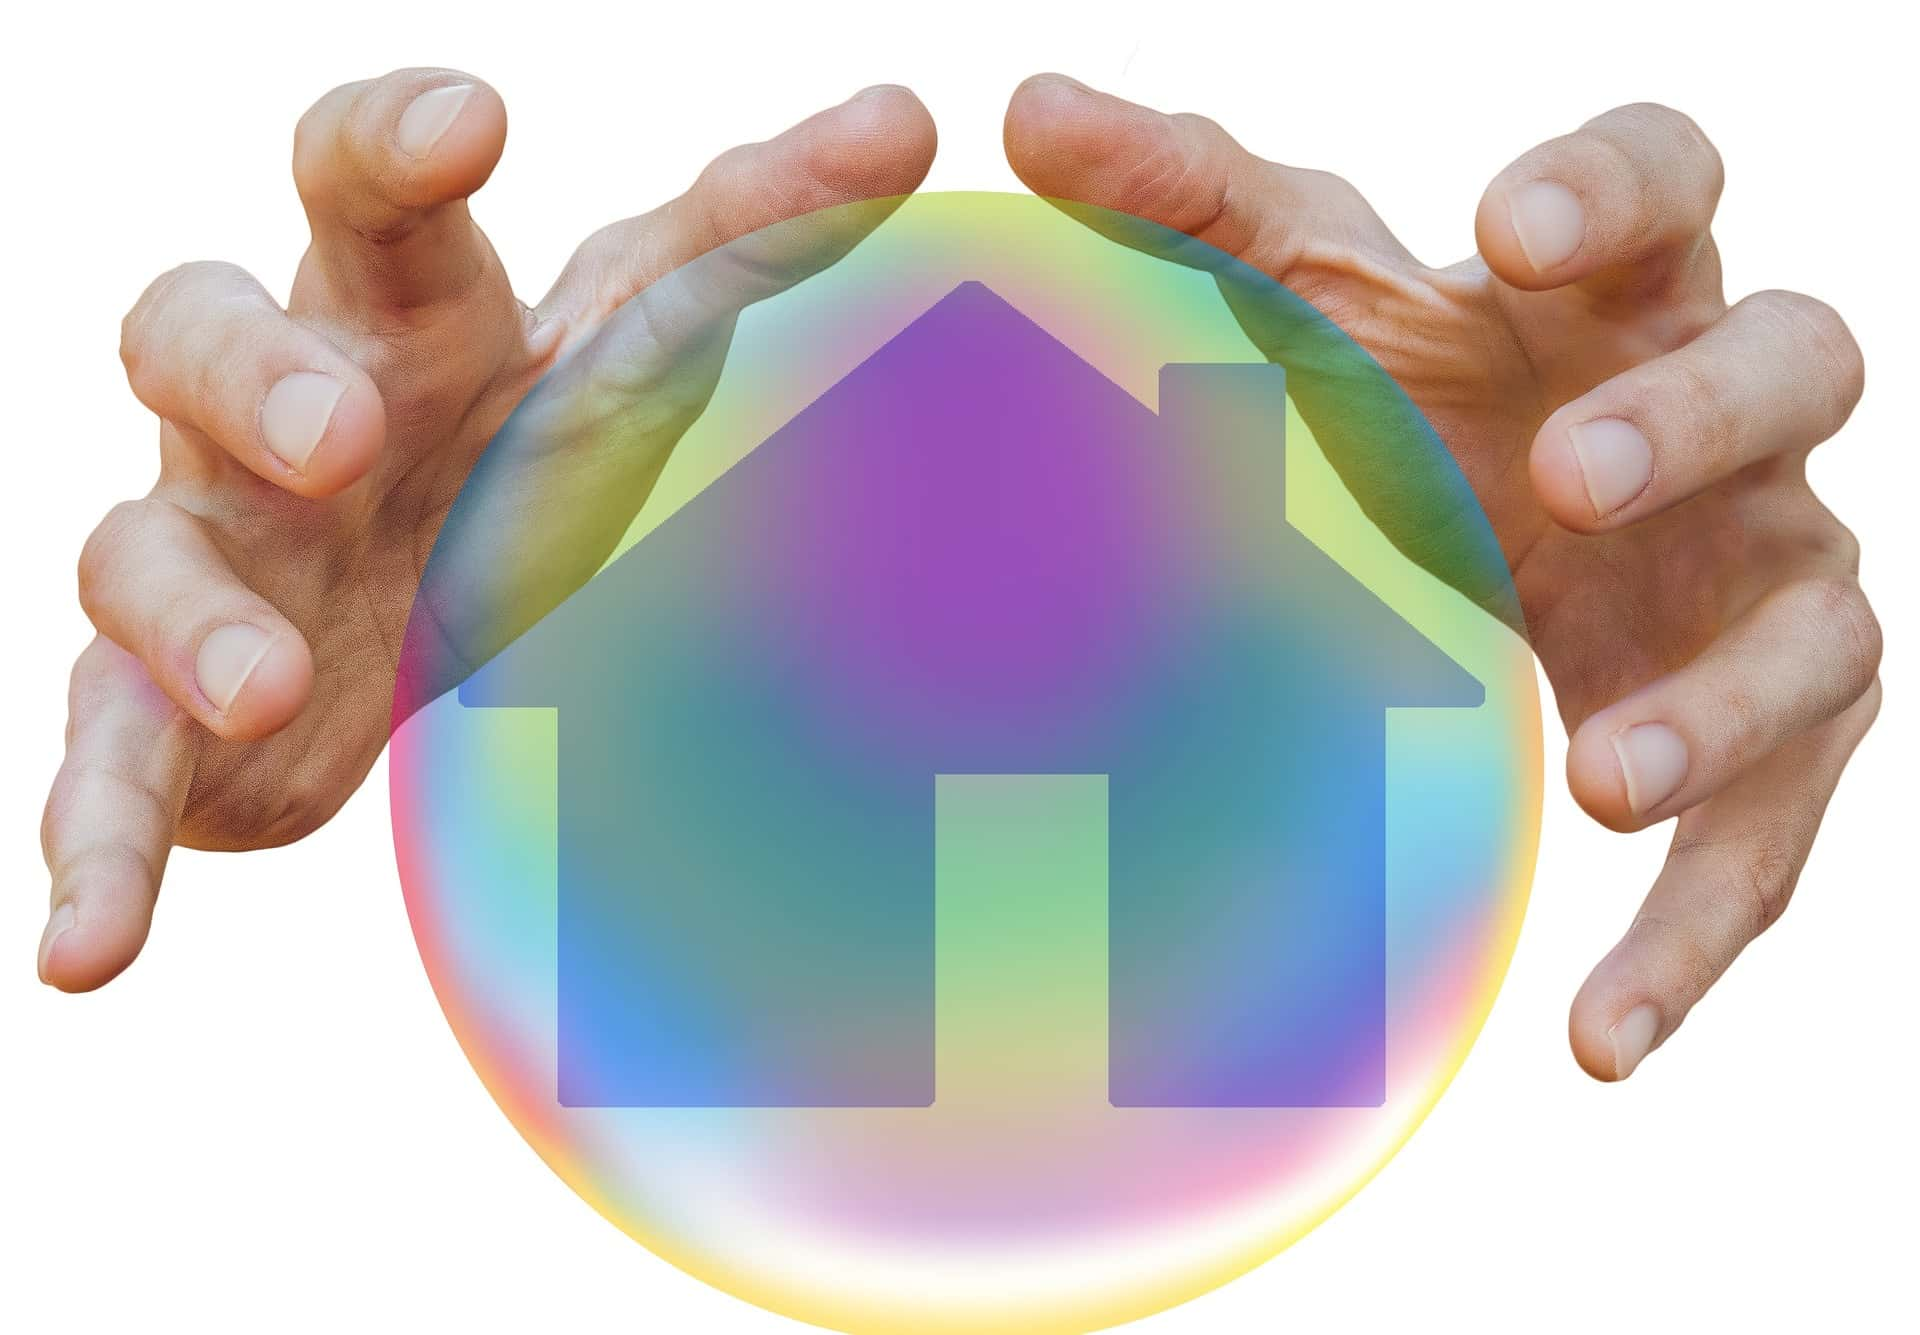 An image showing the silhouette of a house inside a bubble with hands protecting the house.